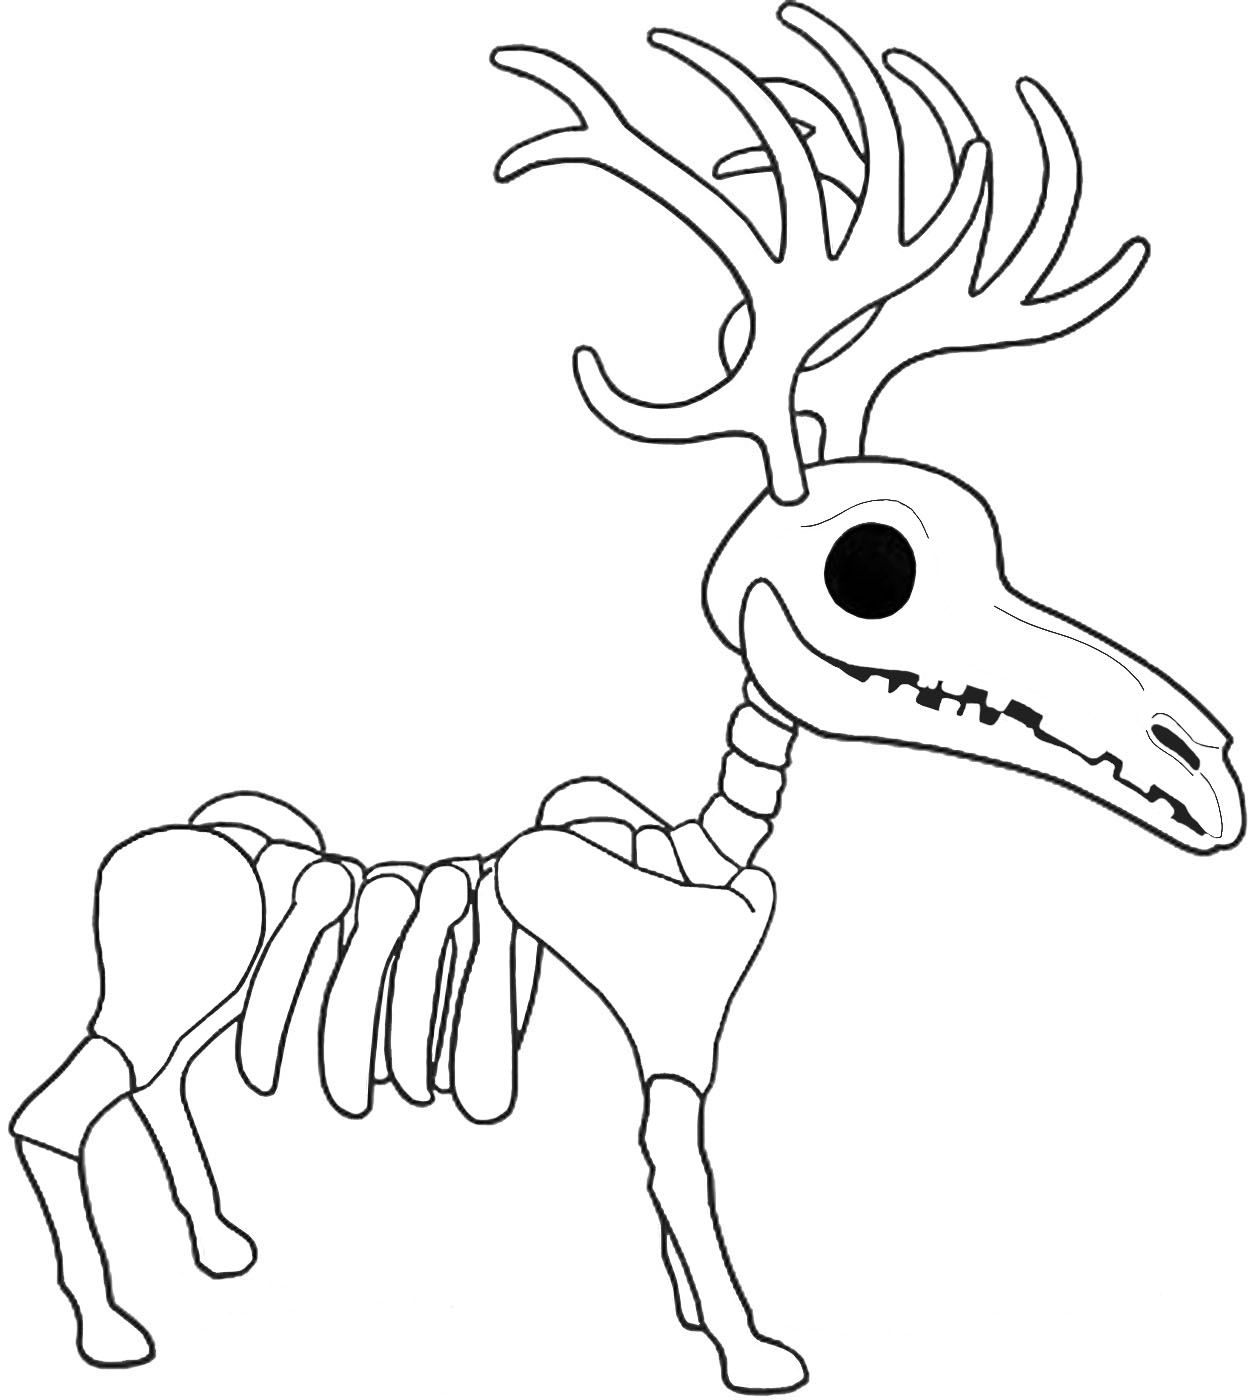 Jacks Skeleton Reindeer In